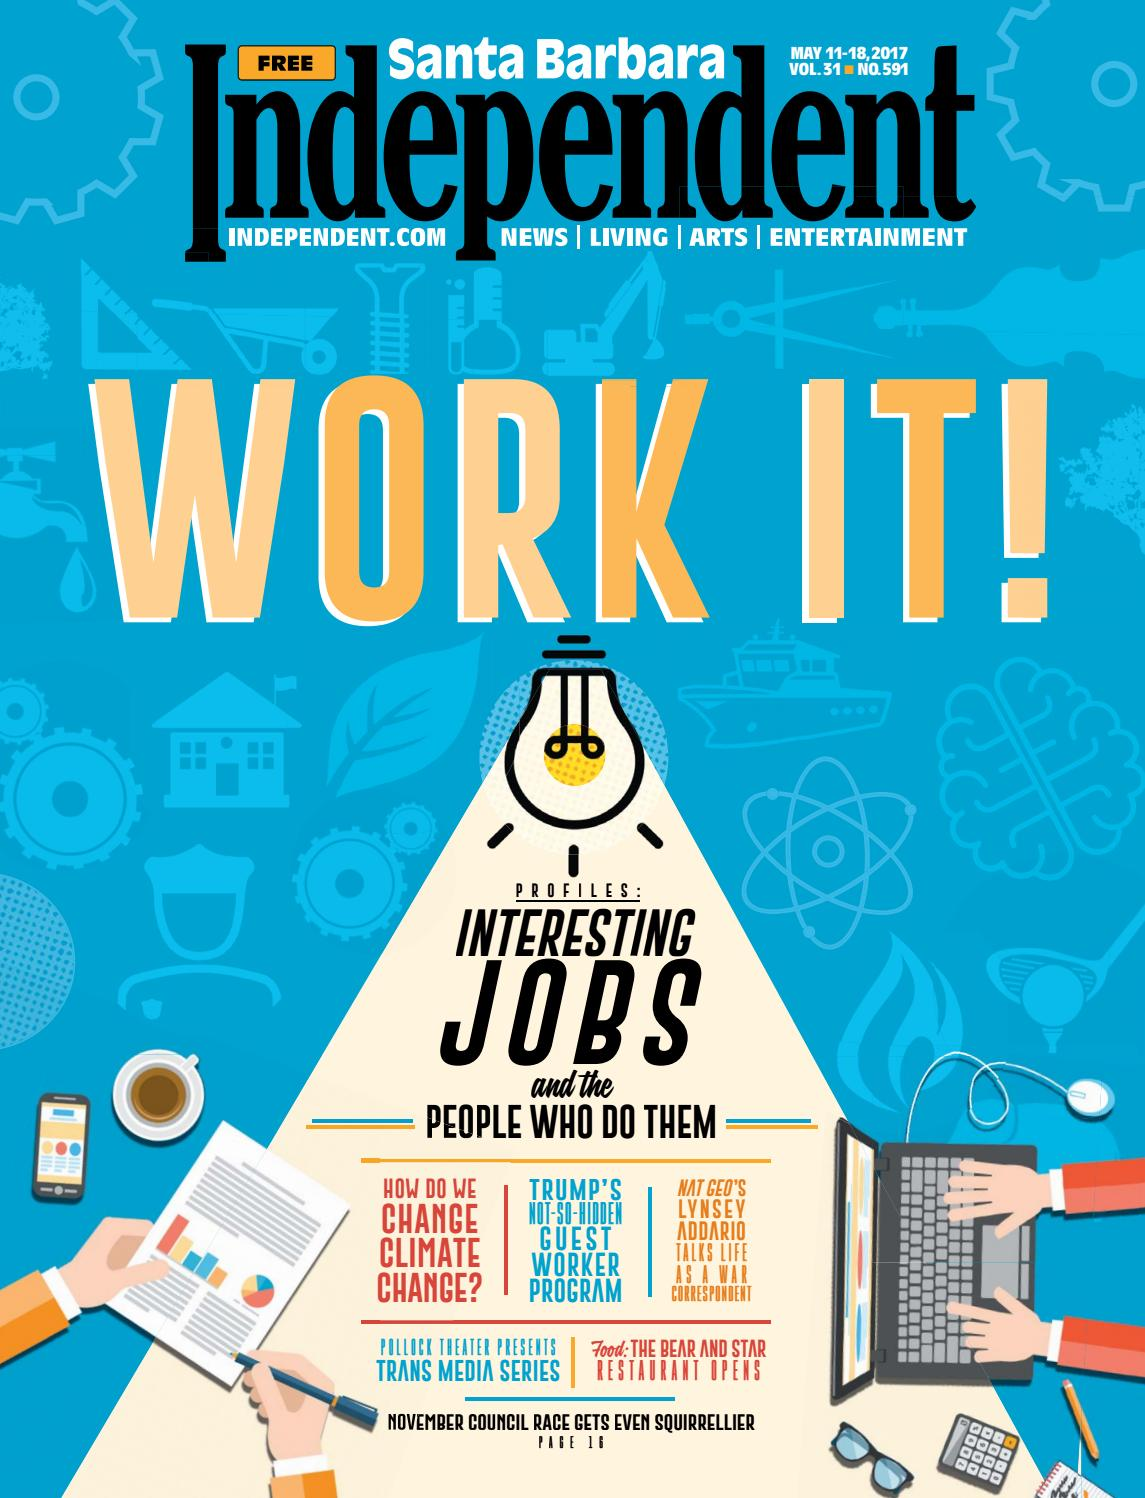 Santa Barbara Independent, 05/11/17 by SB Independent - issuu